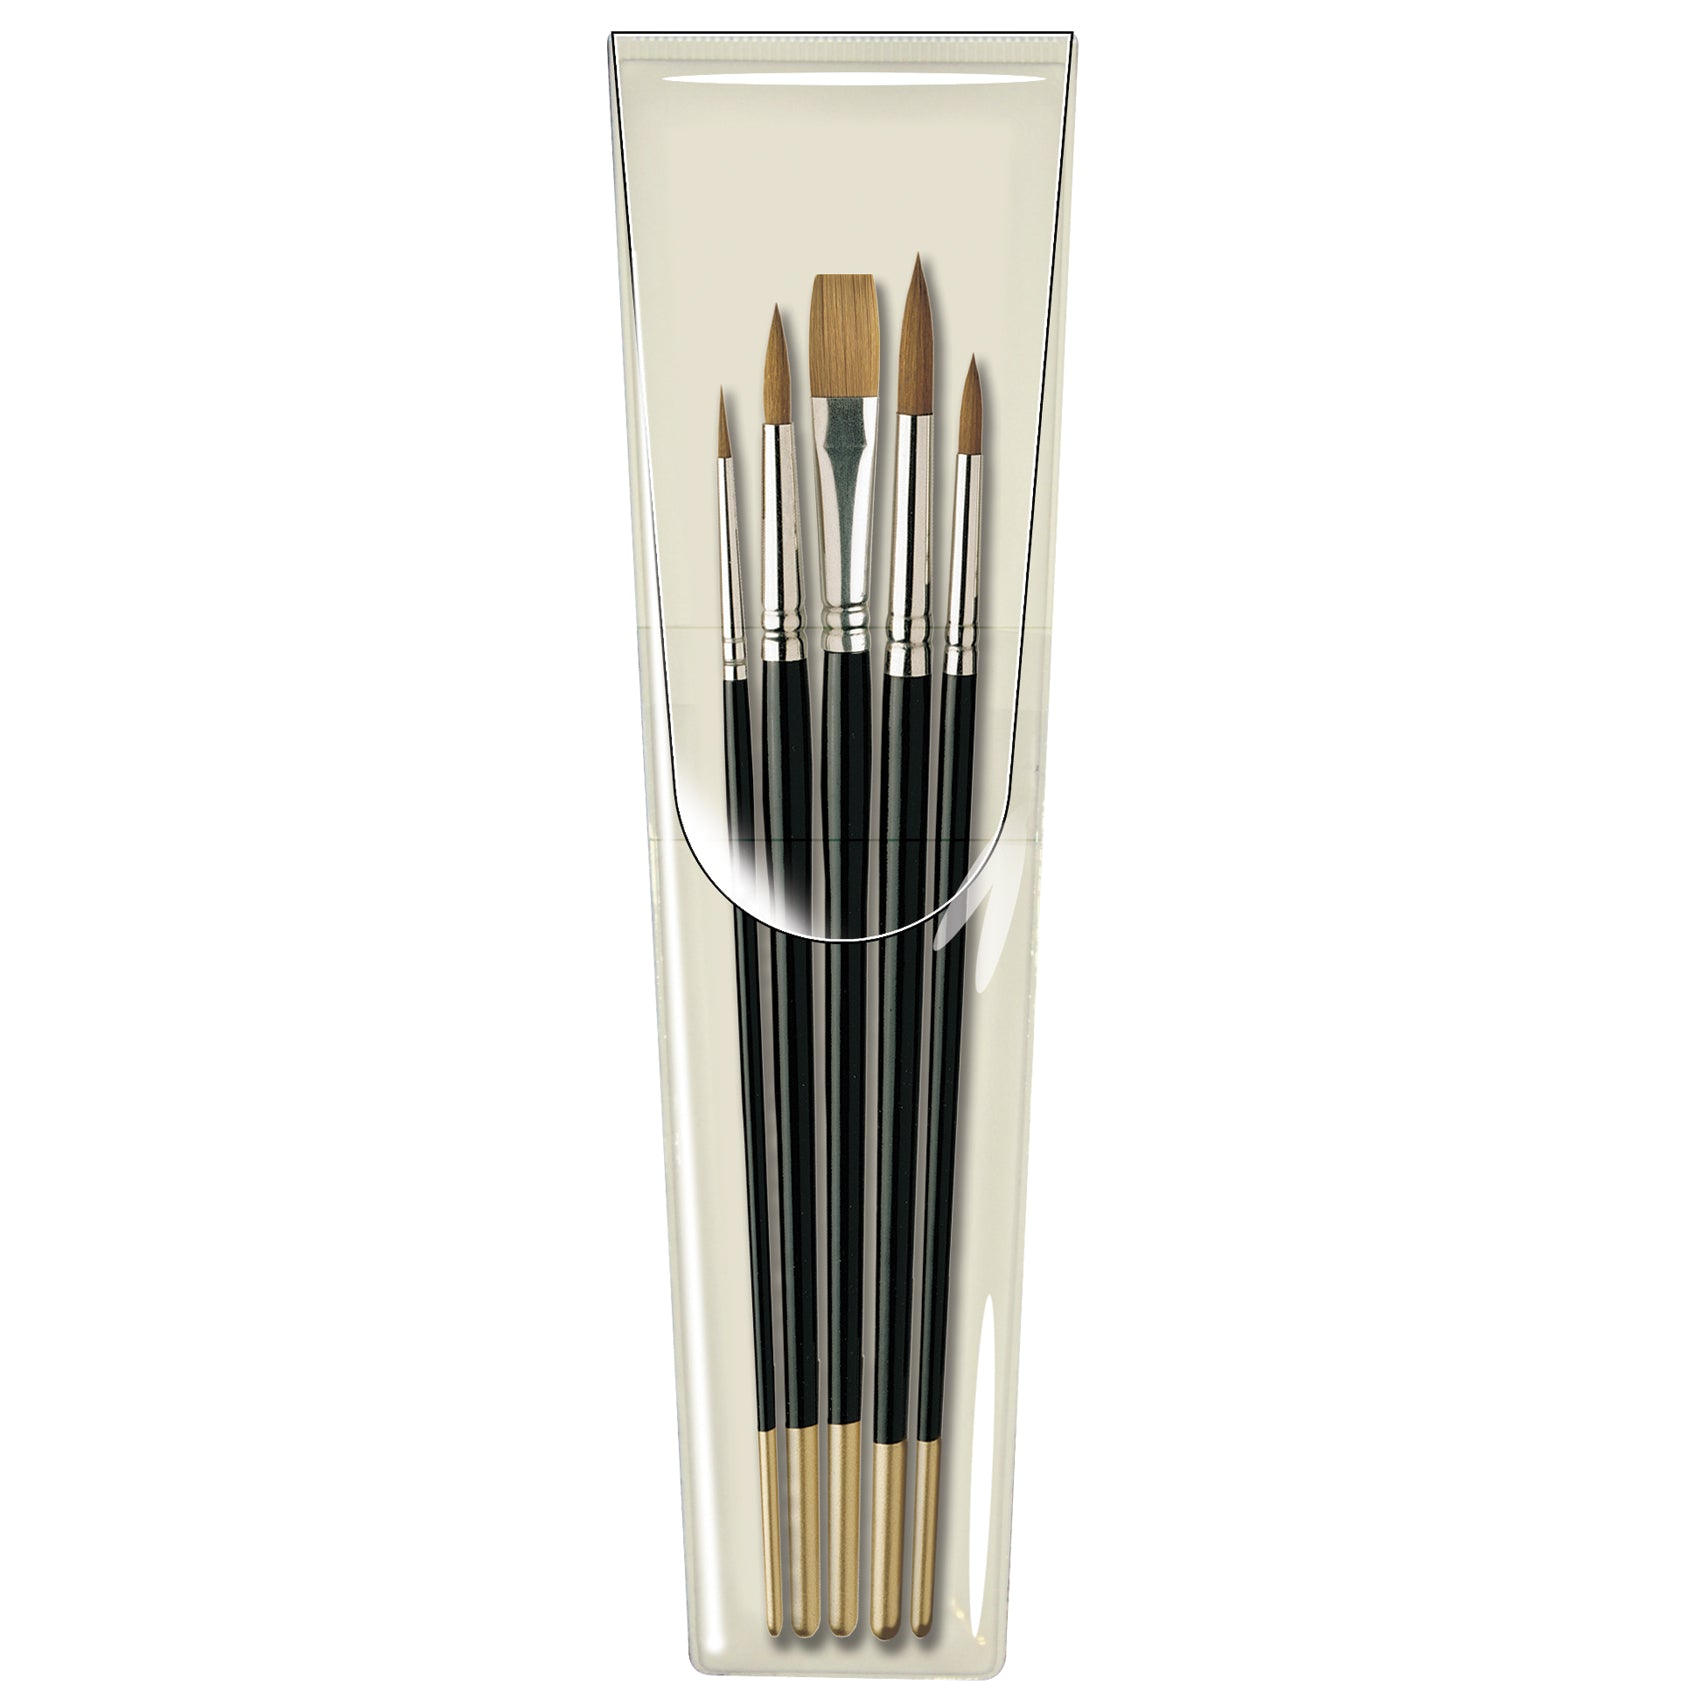 Pro Arte Prolene Brush Set - W3